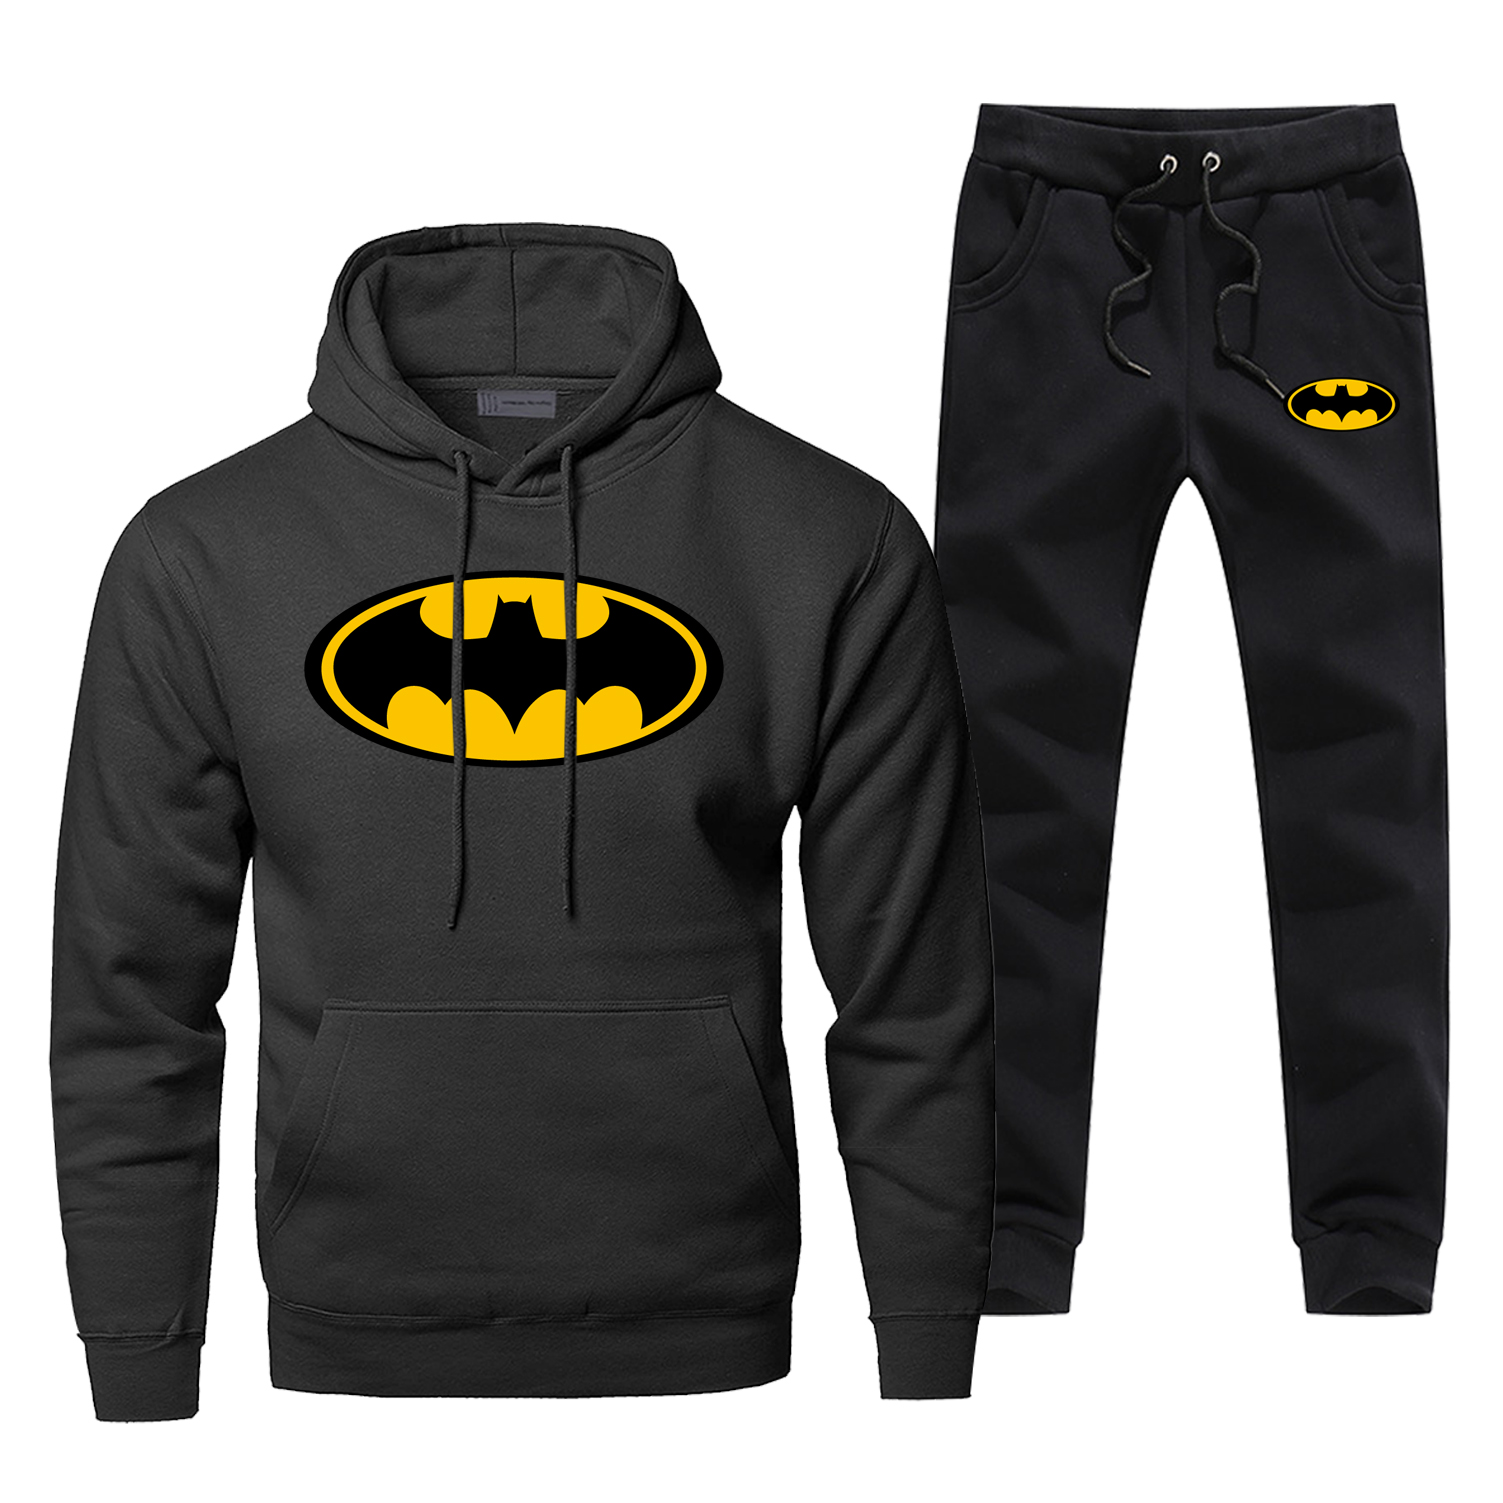 Batman Bruce Wayne Men Hoodies Sweatshirts Pants Sets Hoodie Suit Tracksuit 2 PCS Hoody Pant Sweatshirt Sweatpants Pullover Set